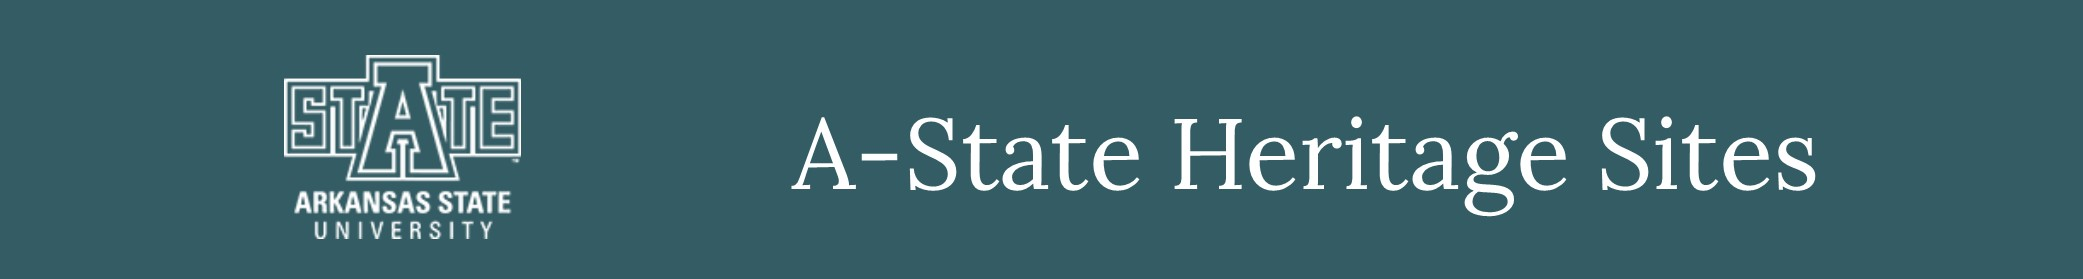 A-State Heritage Sites